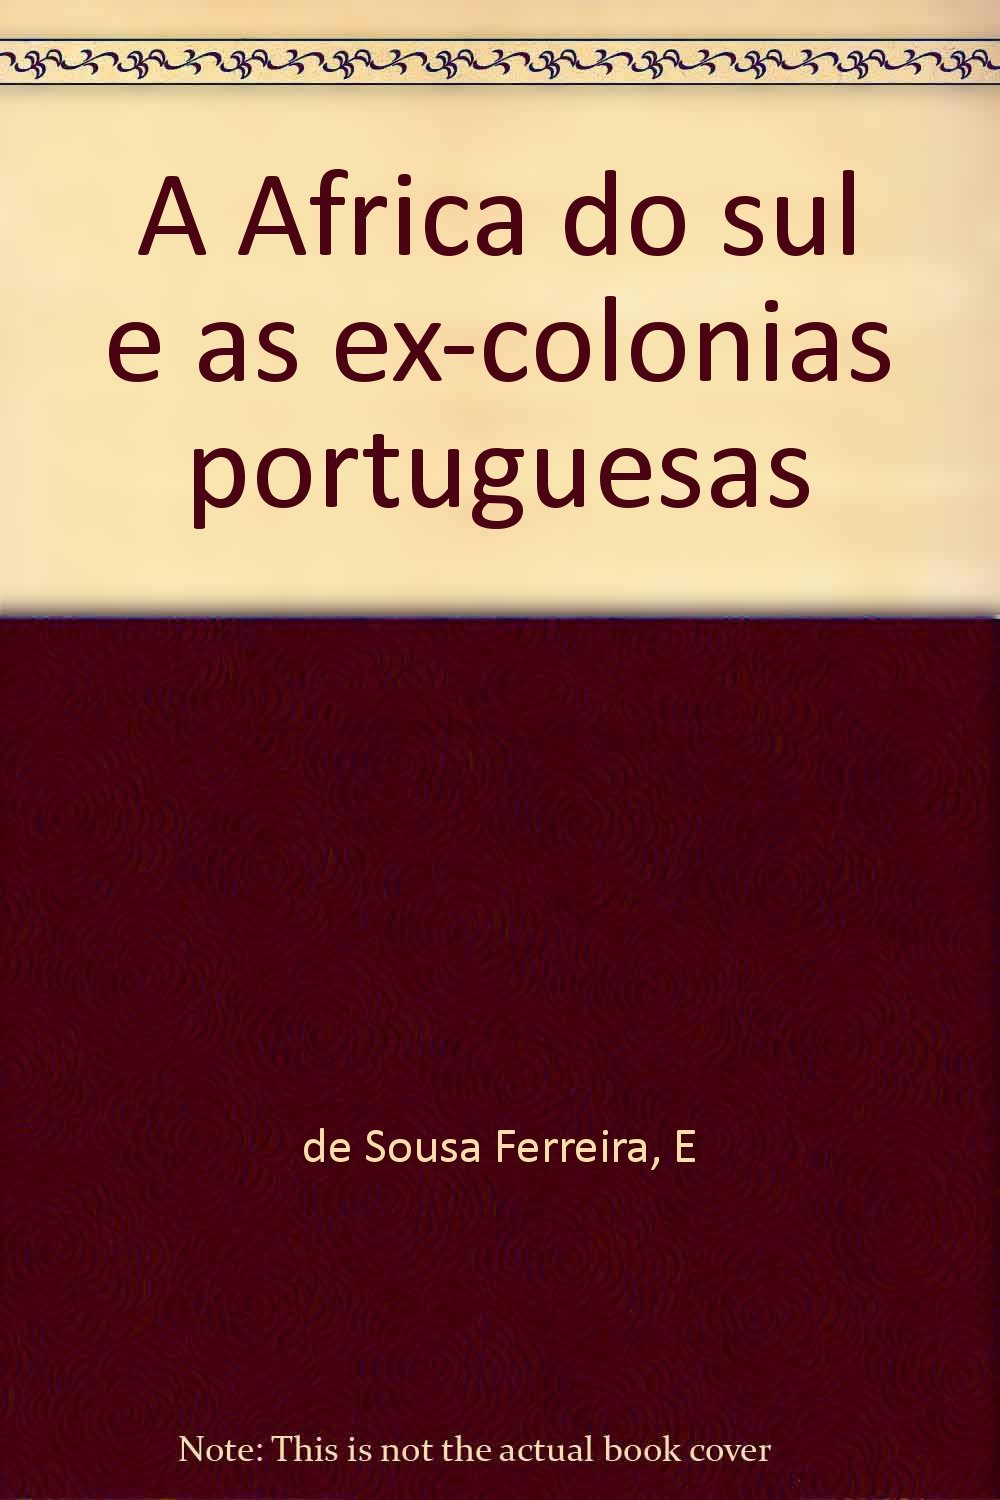 A Africa do sul e as ex-colonias portuguesas: Amazon.es: E de Sousa Ferreira: Libros